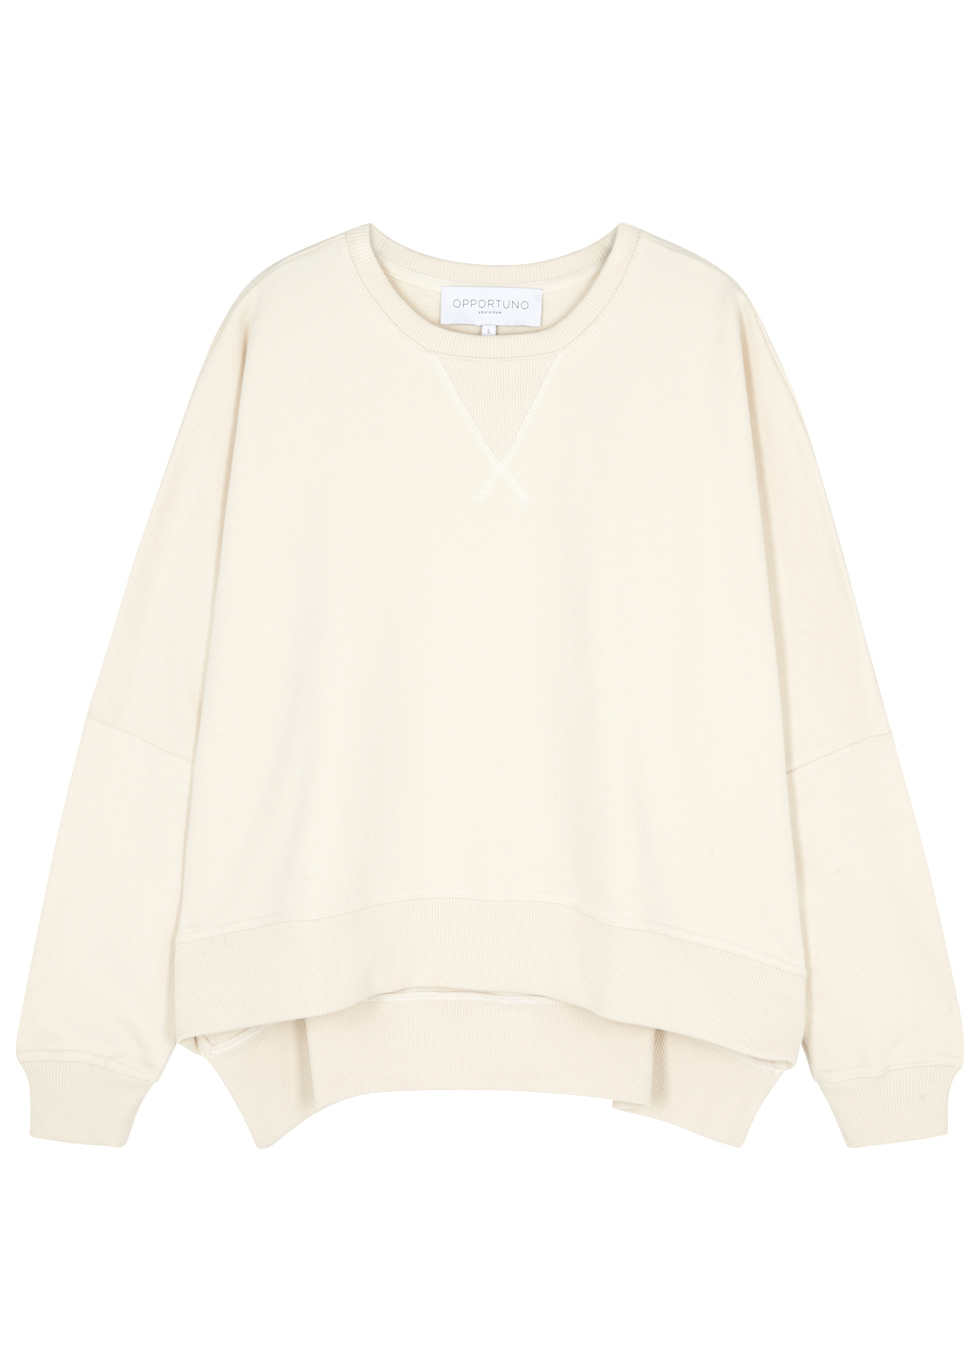 OPPORTUNO Galilea Ecru Cotton Sweatshirt